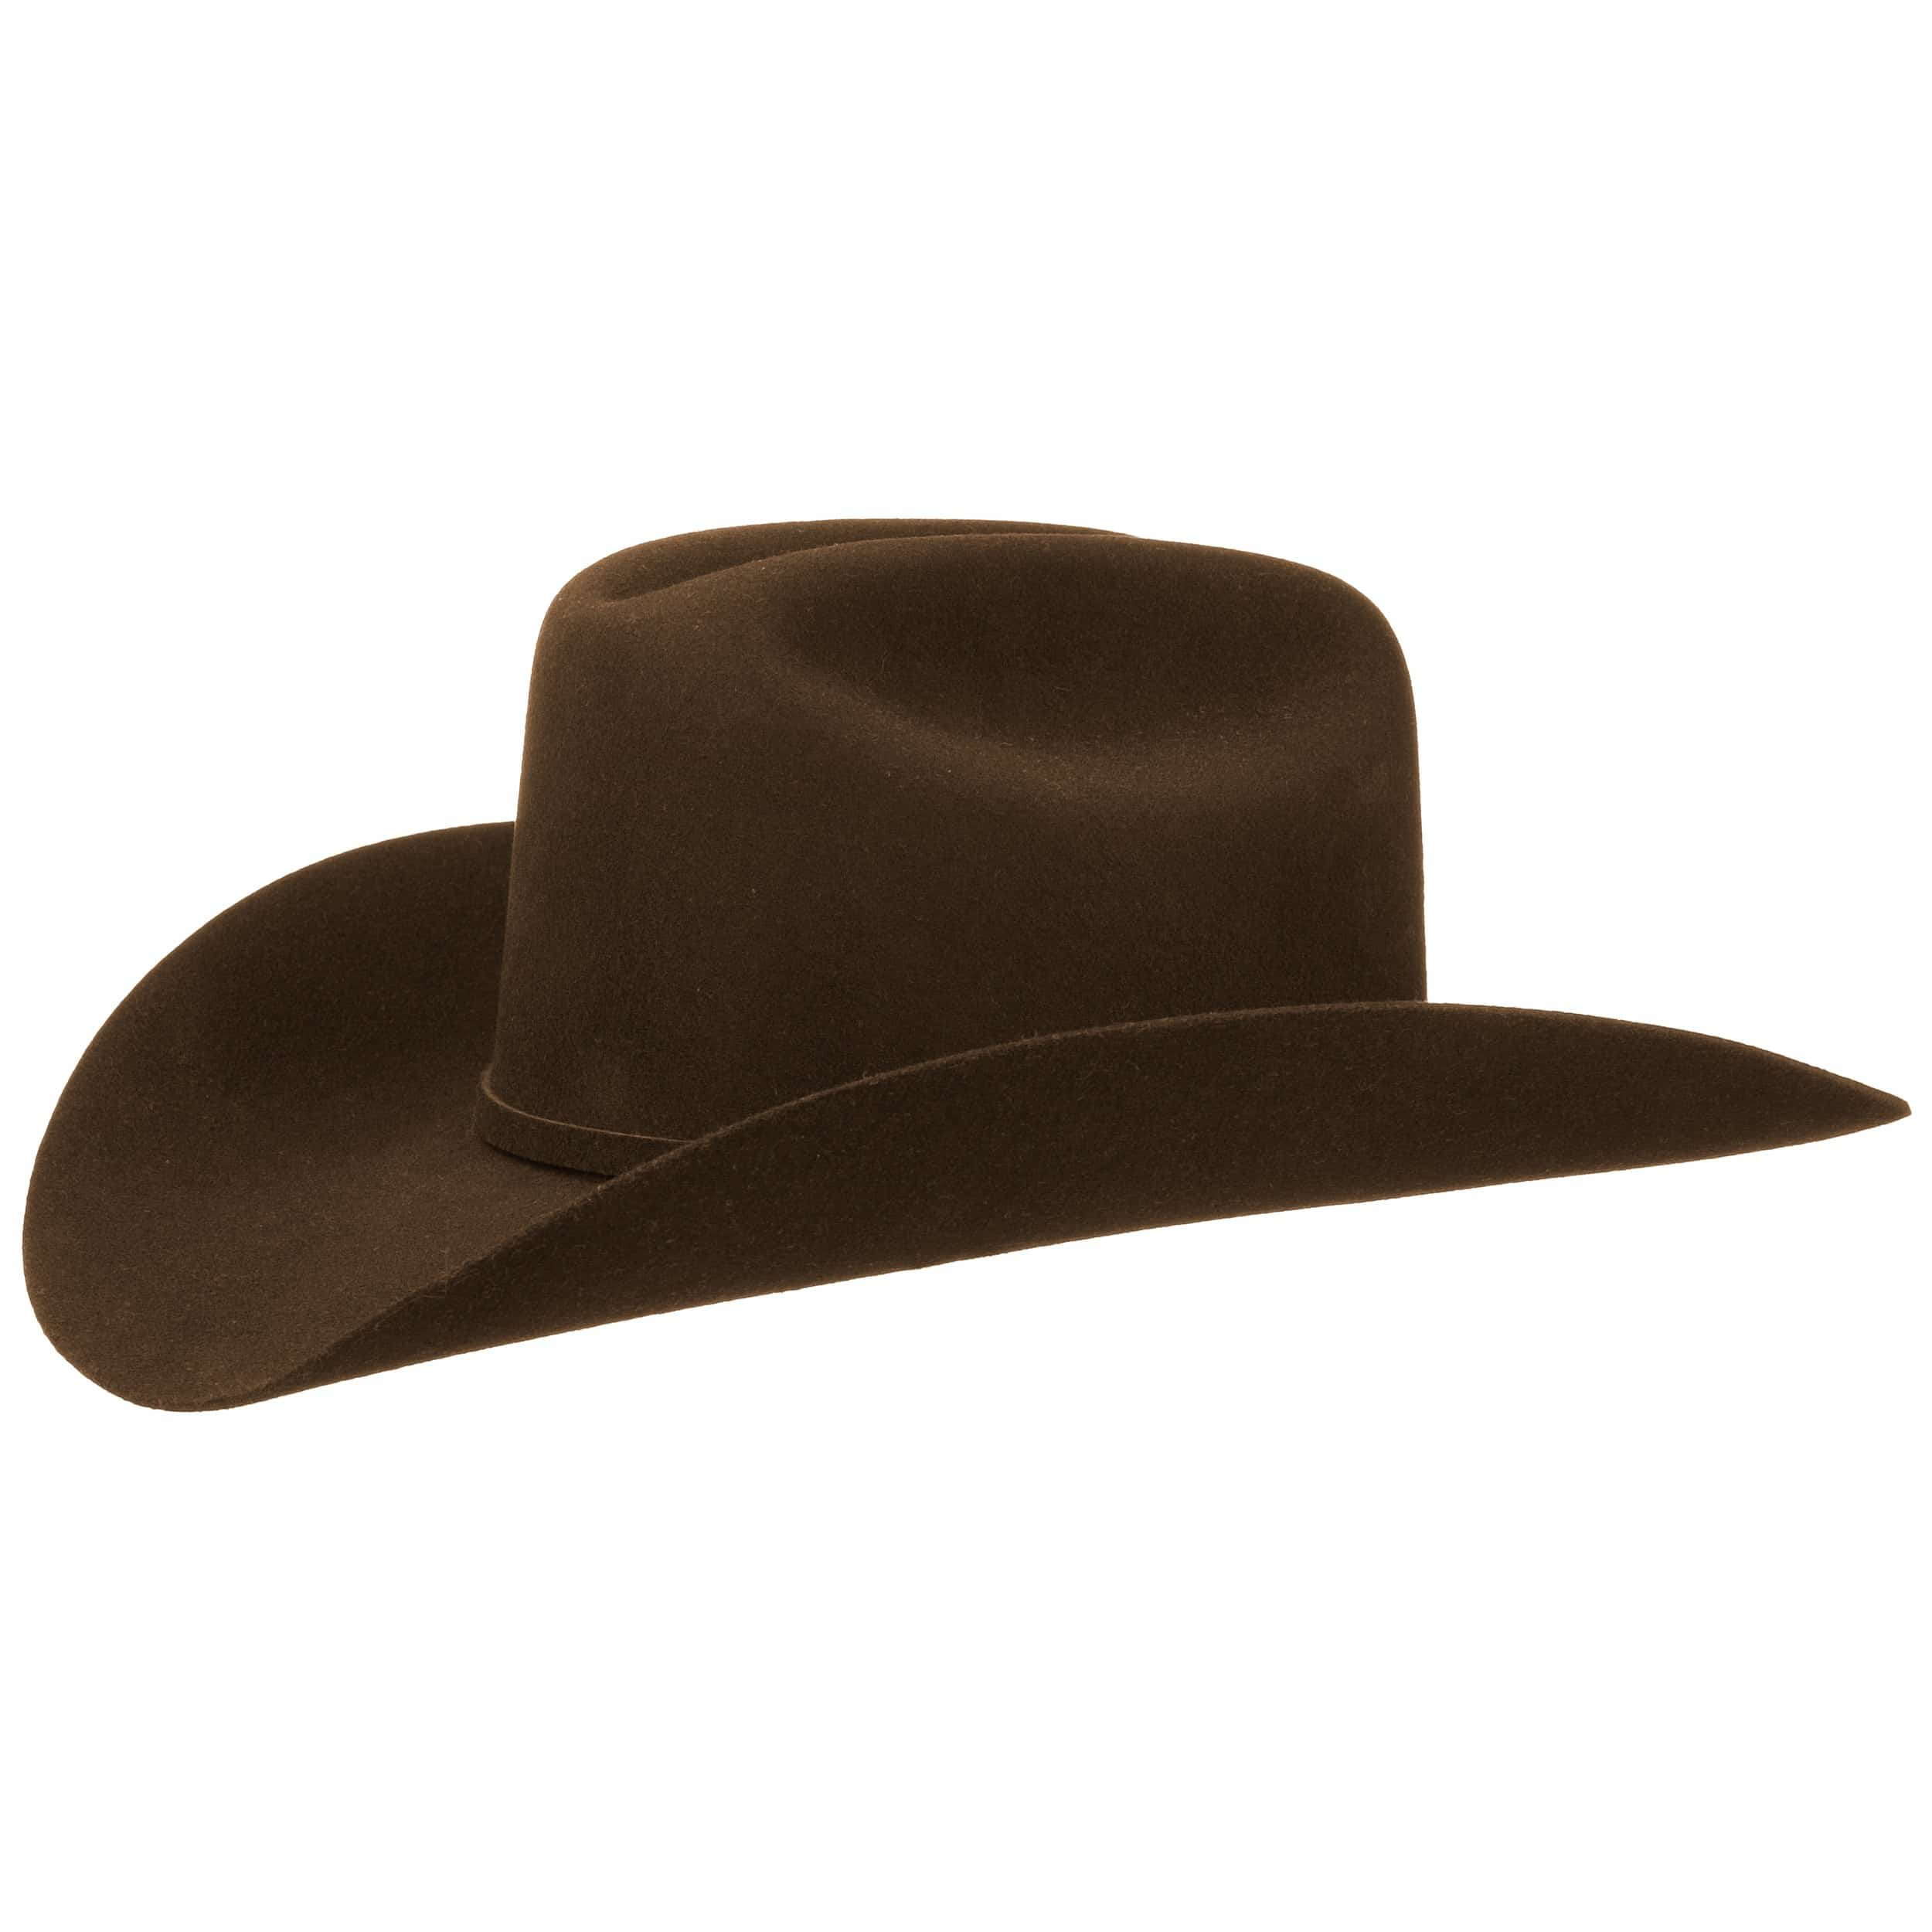 ... Cappello Western The Valley 4X by Stetson - marrone 3 ... b5fefa0e0da7